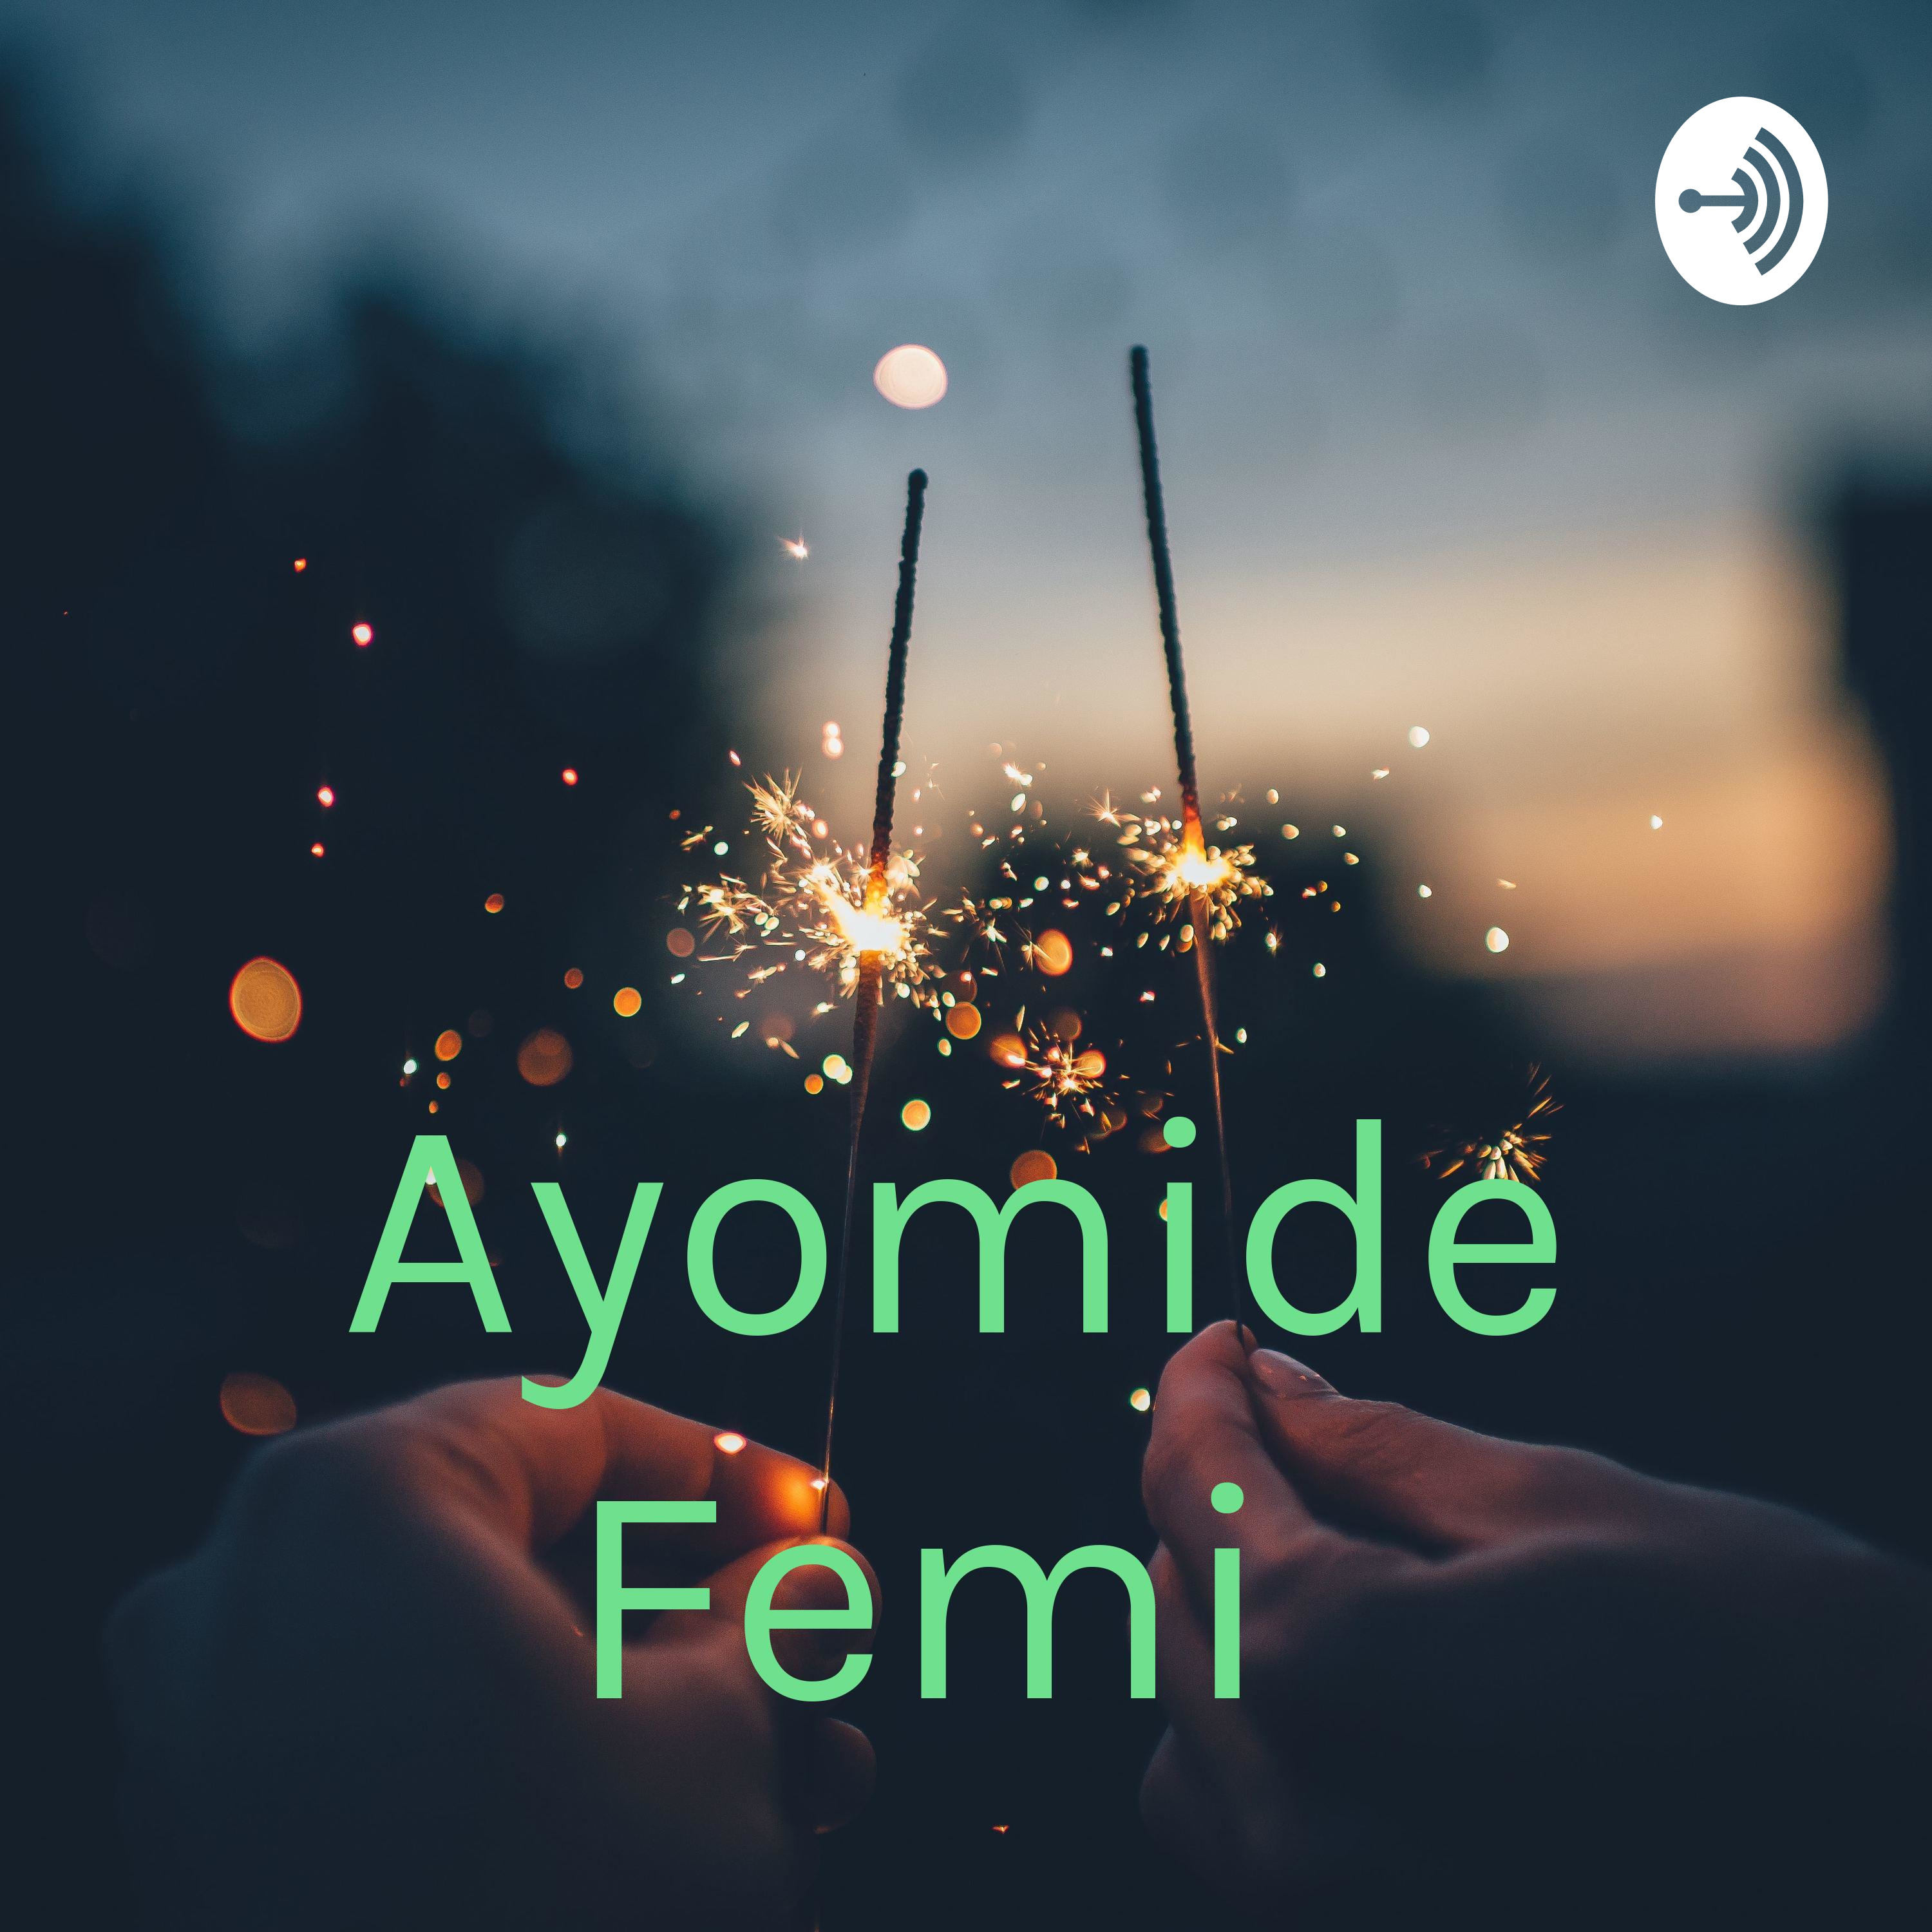 Ayomide Femi on Jamit